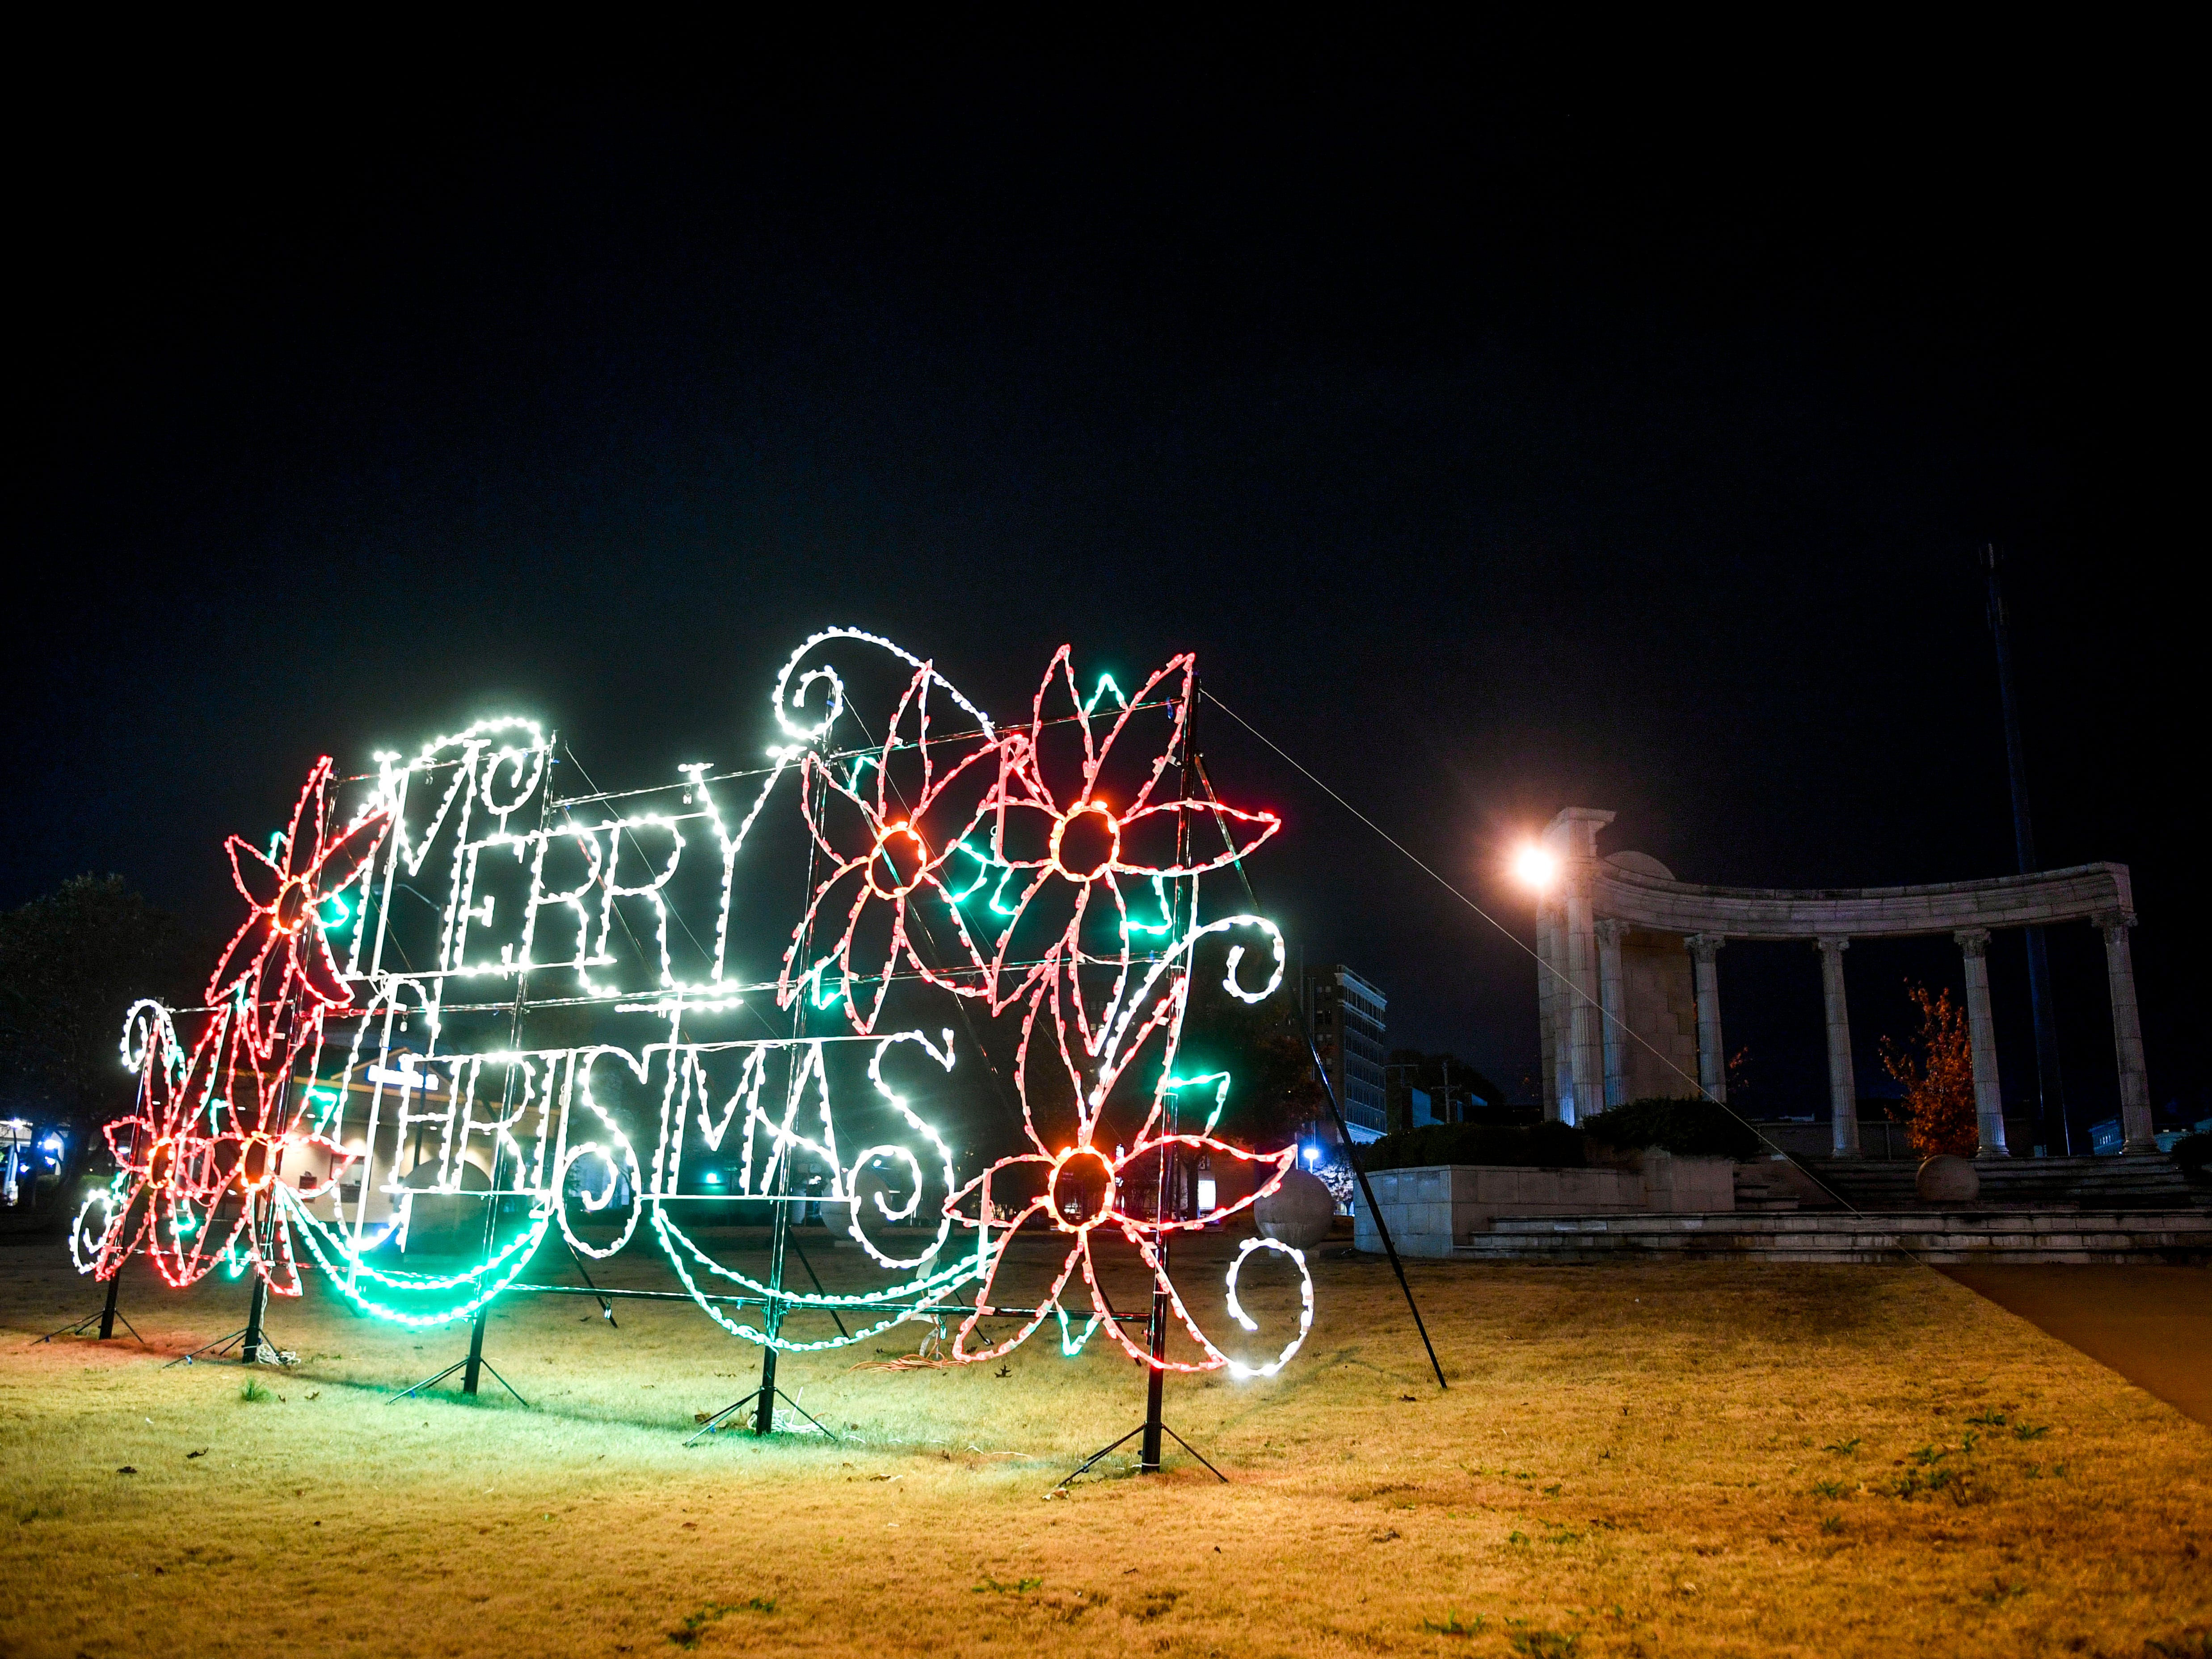 Amongst other holiday displays celebrating the Christmas season, this lighting display can be seen at Unity Park near downtown in Jackson, Tenn., on Monday, Nov. 19, 2018.